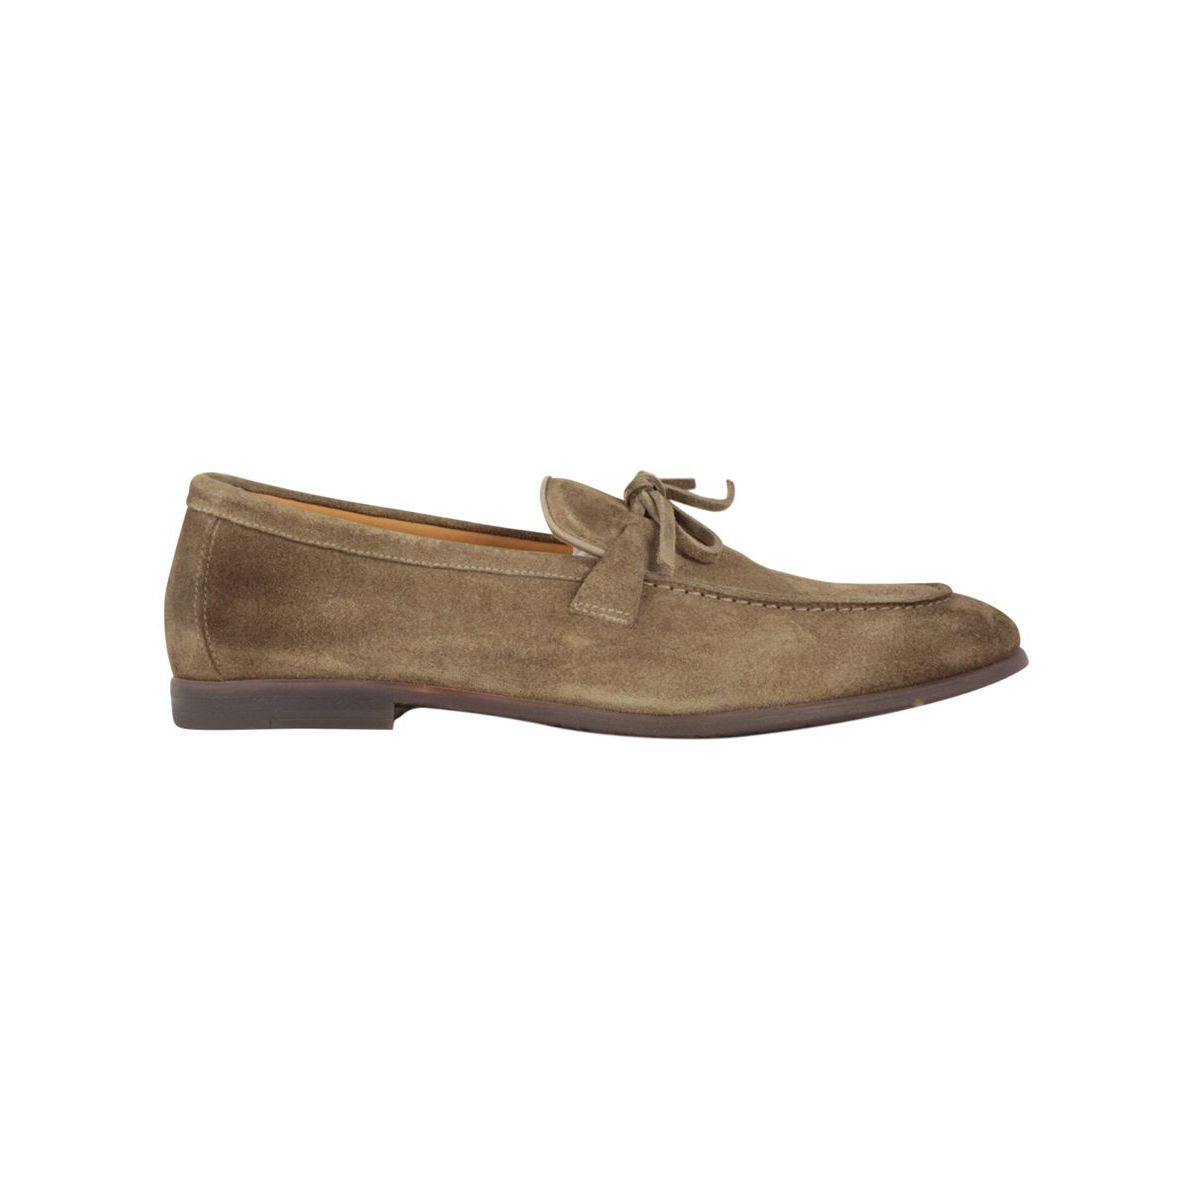 Suede moccasin with fringed detail Tobacco Doucal's